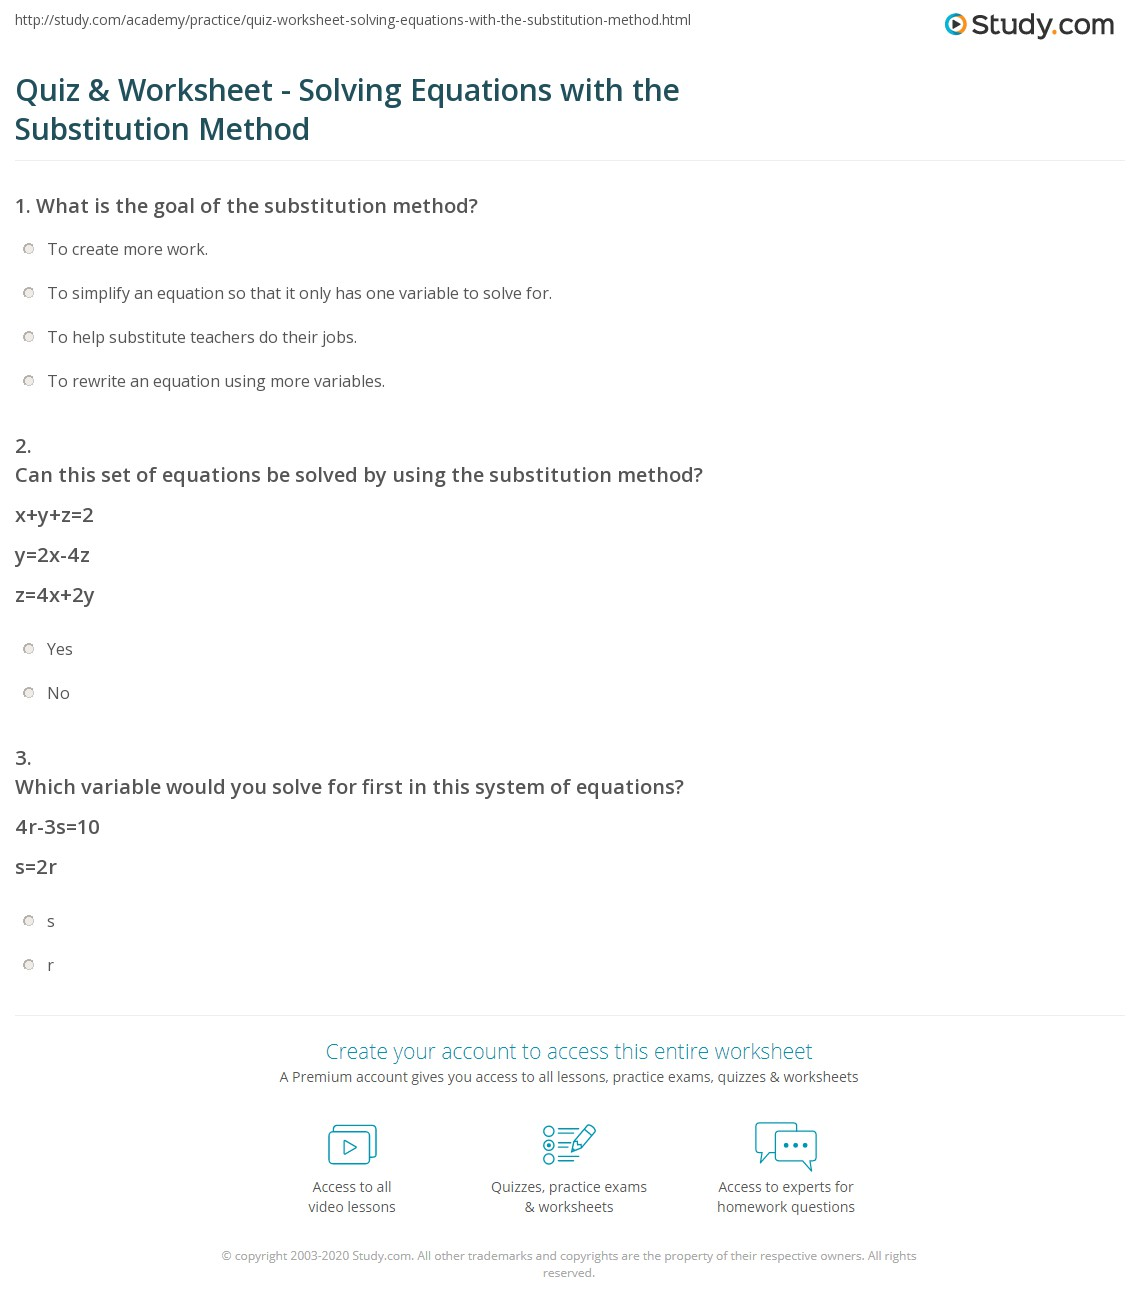 Quiz & Worksheet - Solving Equations with the Substitution Method ...